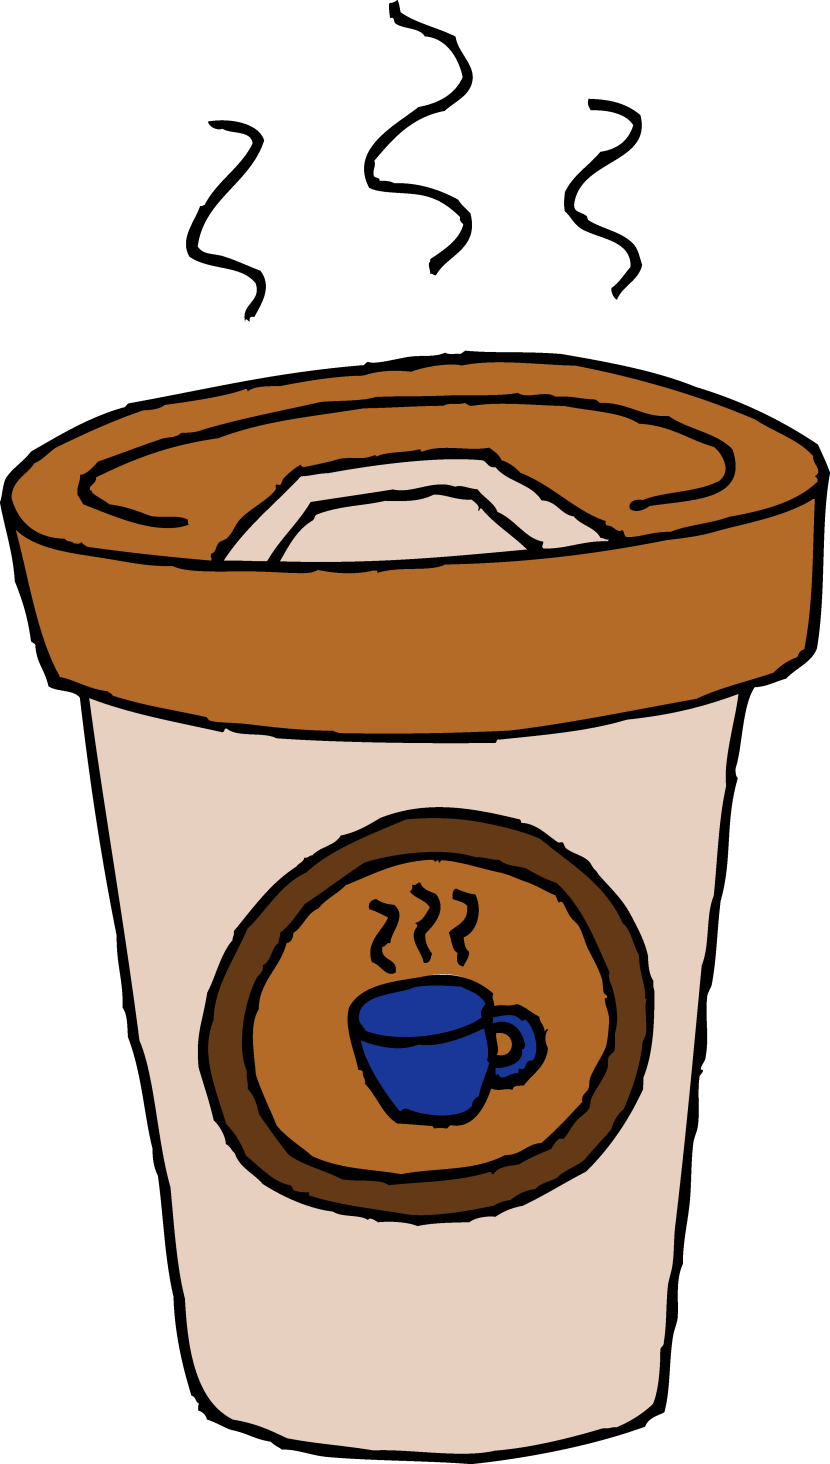 Coffee clipart on go Art Clipart #1107 Cup of